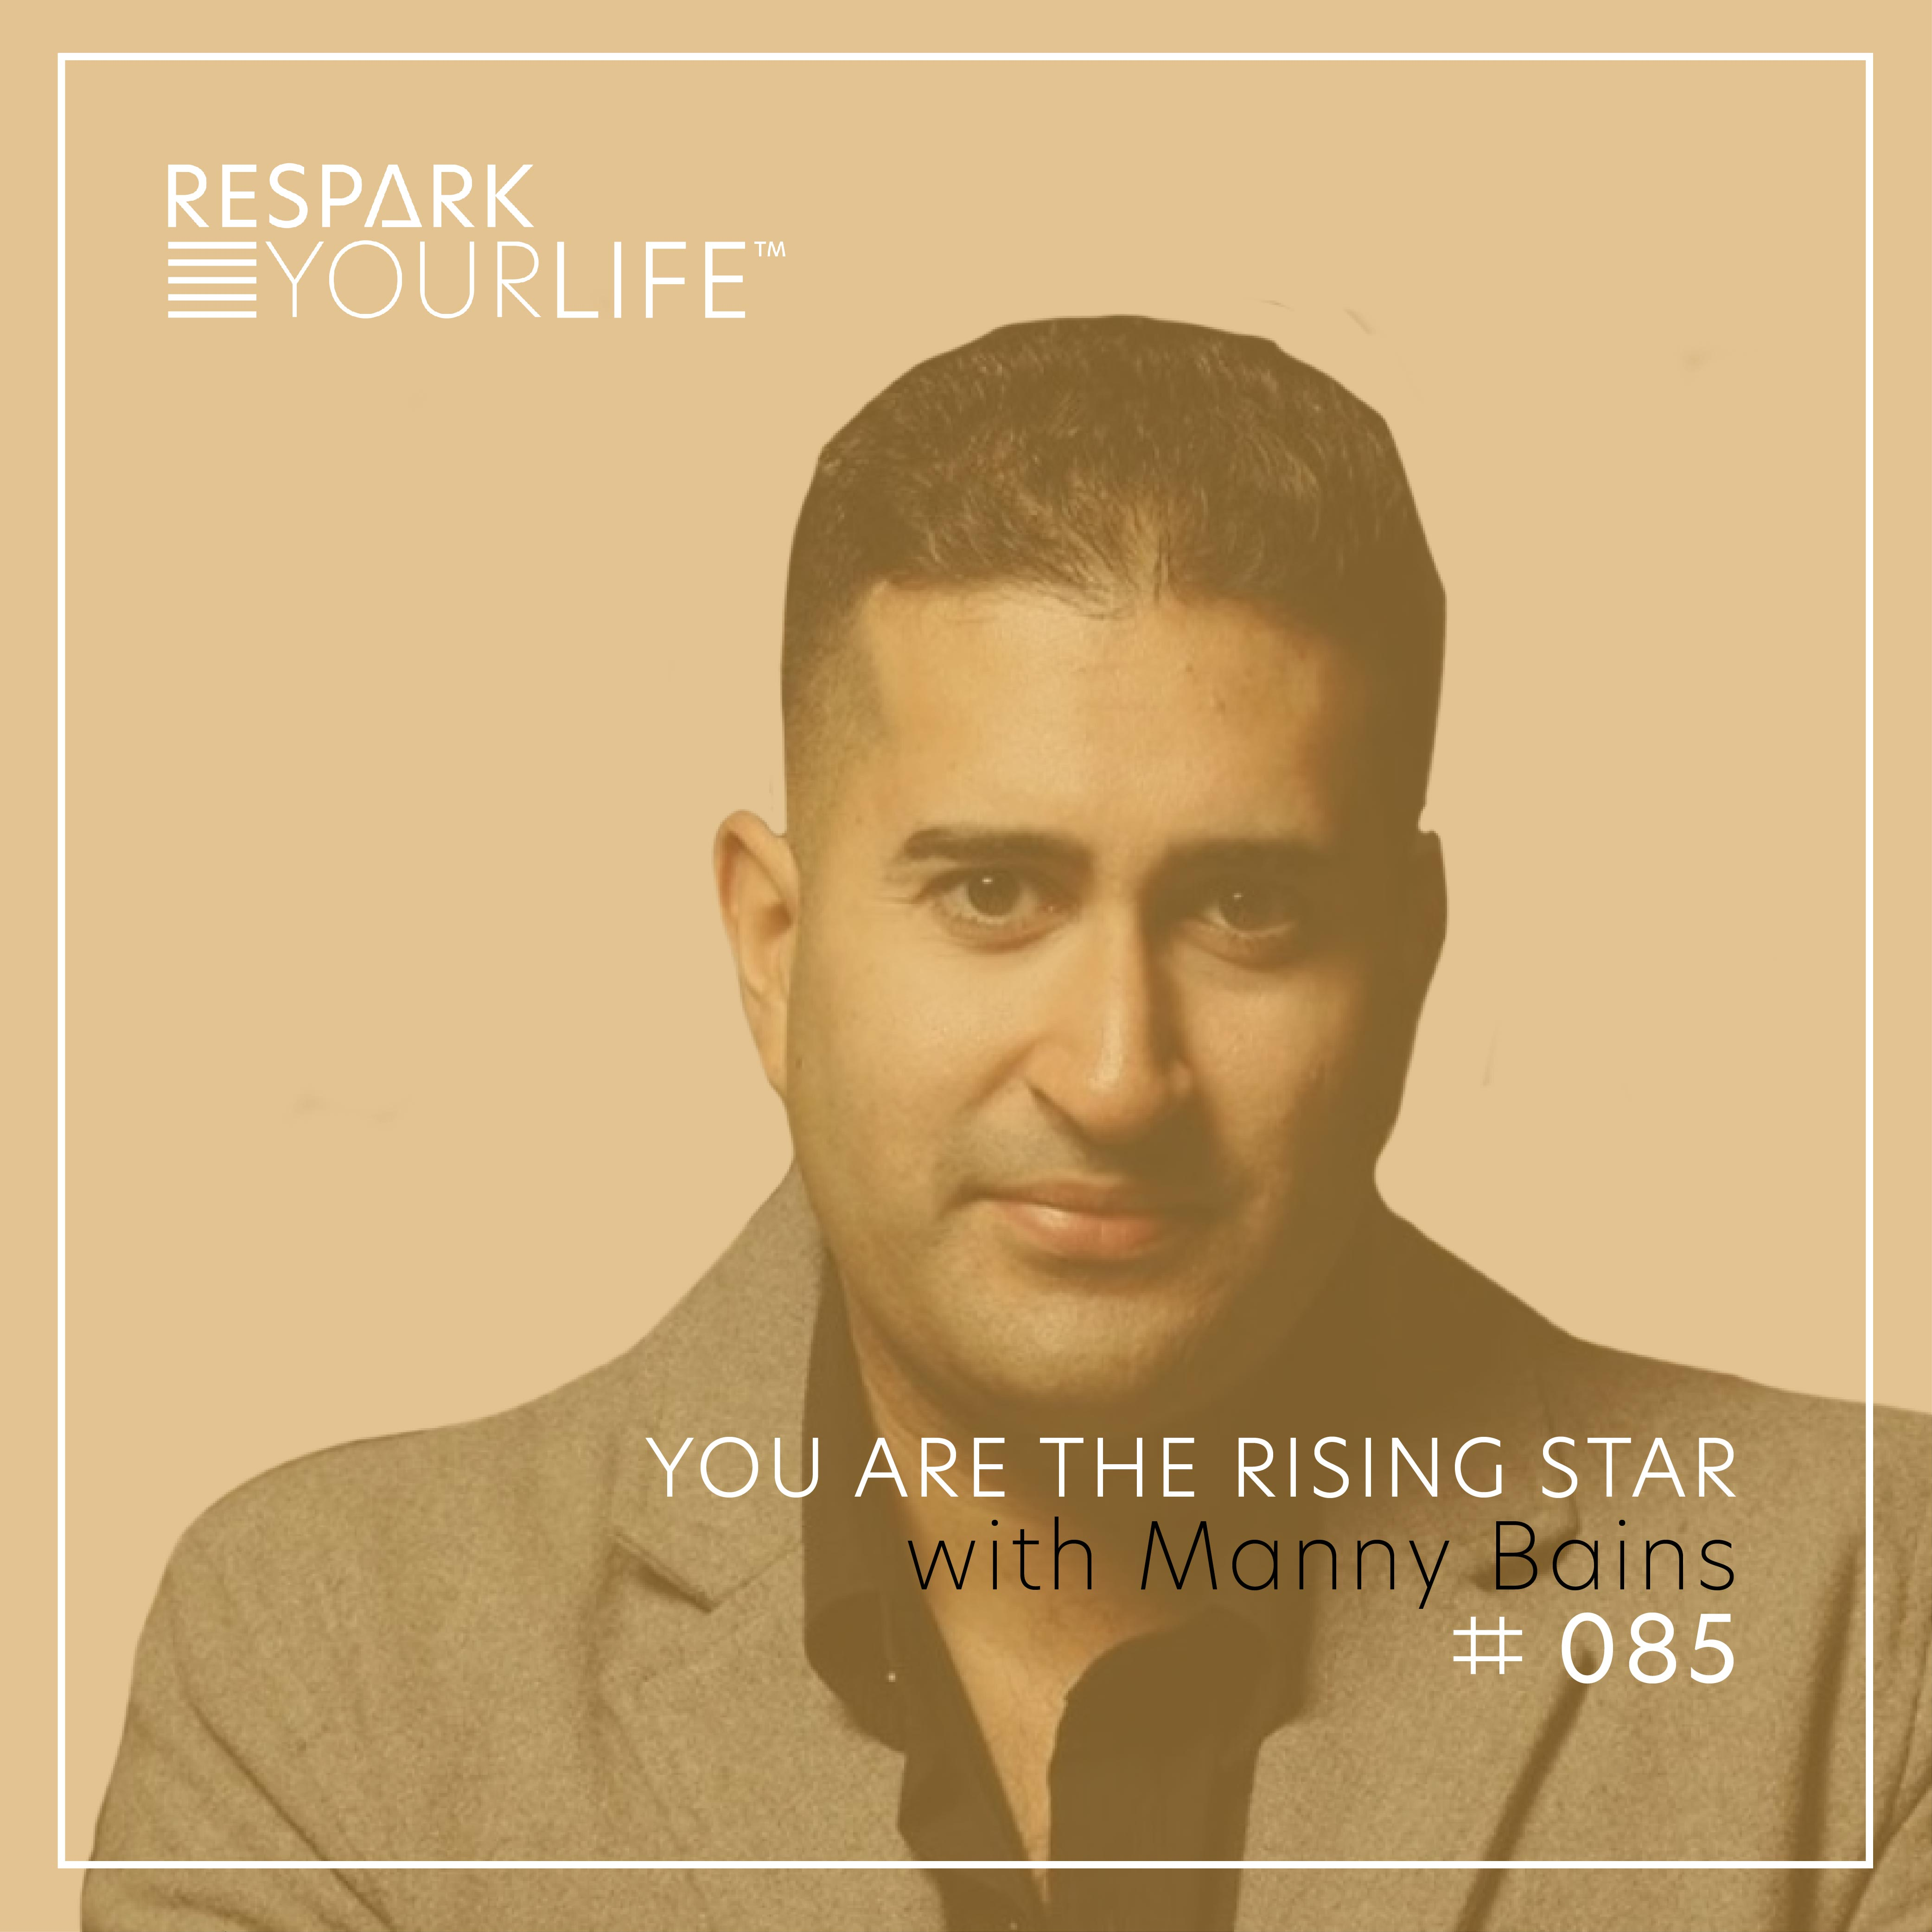 You are the Rising Star with Manny Bains